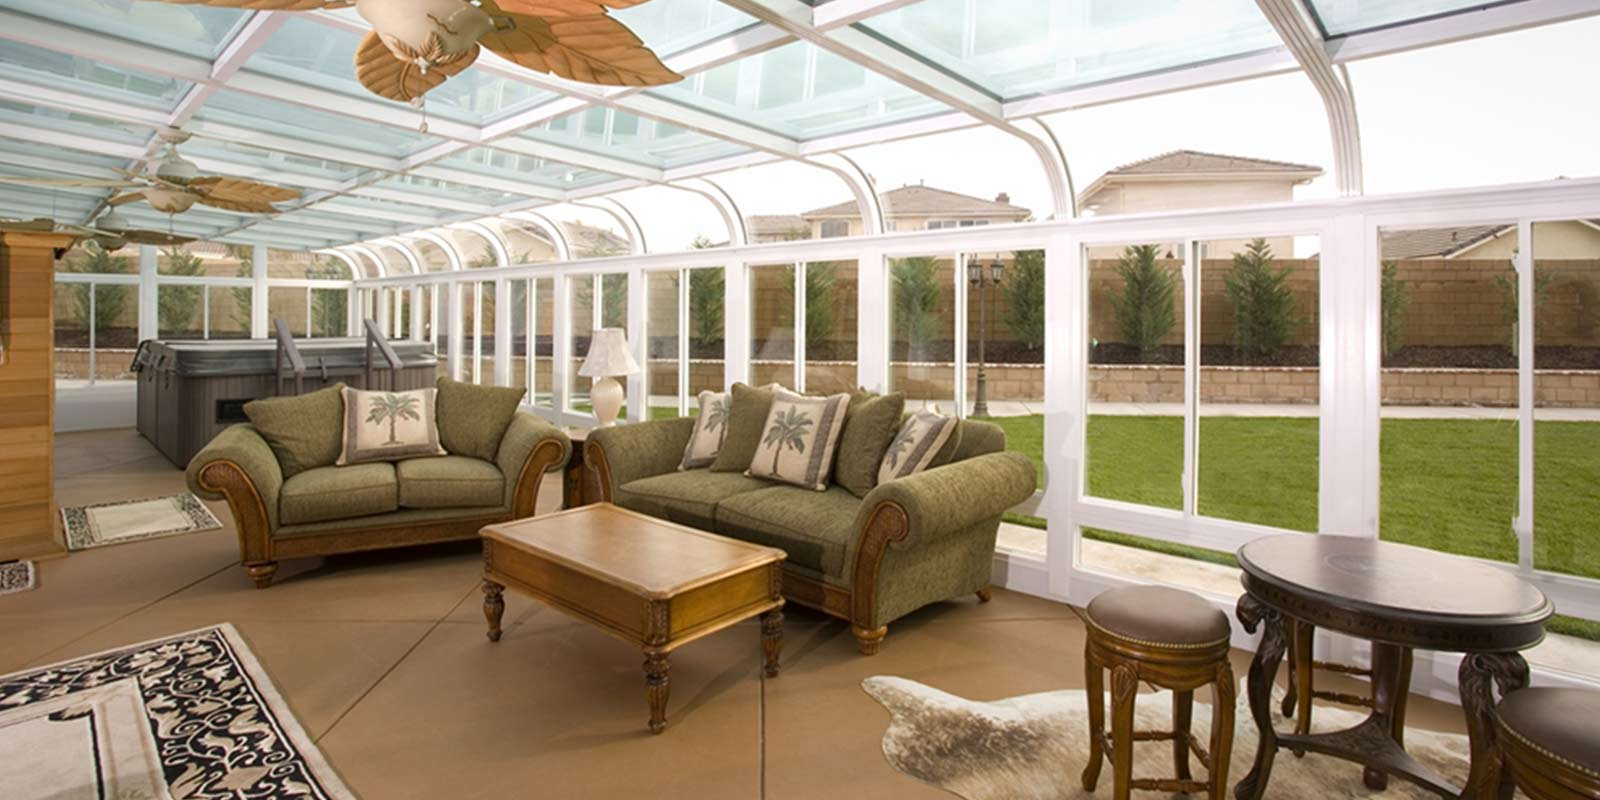 Sunroom Conservatory All Season Room C Thru Sunrooms